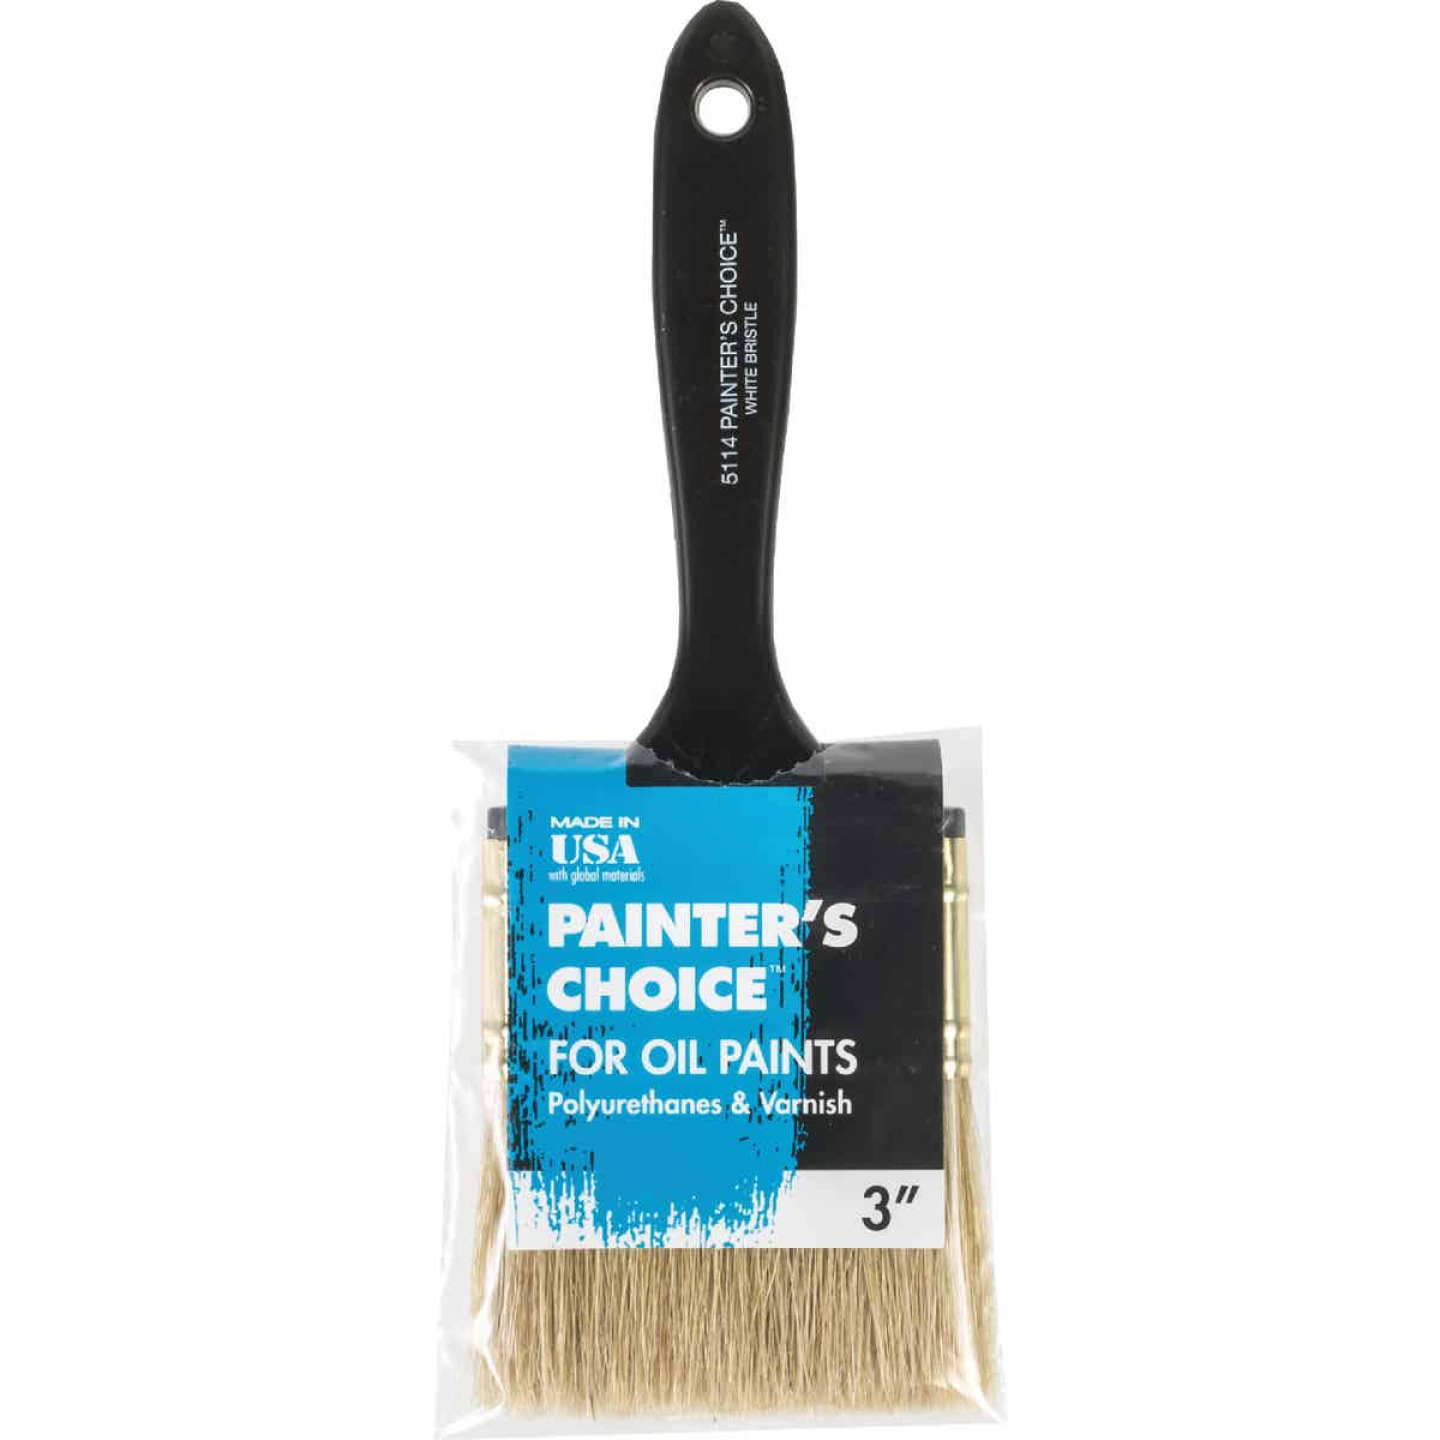 Wooster Painter's Choice 3 In. White China Bristle Flat Paint Brush Image 1